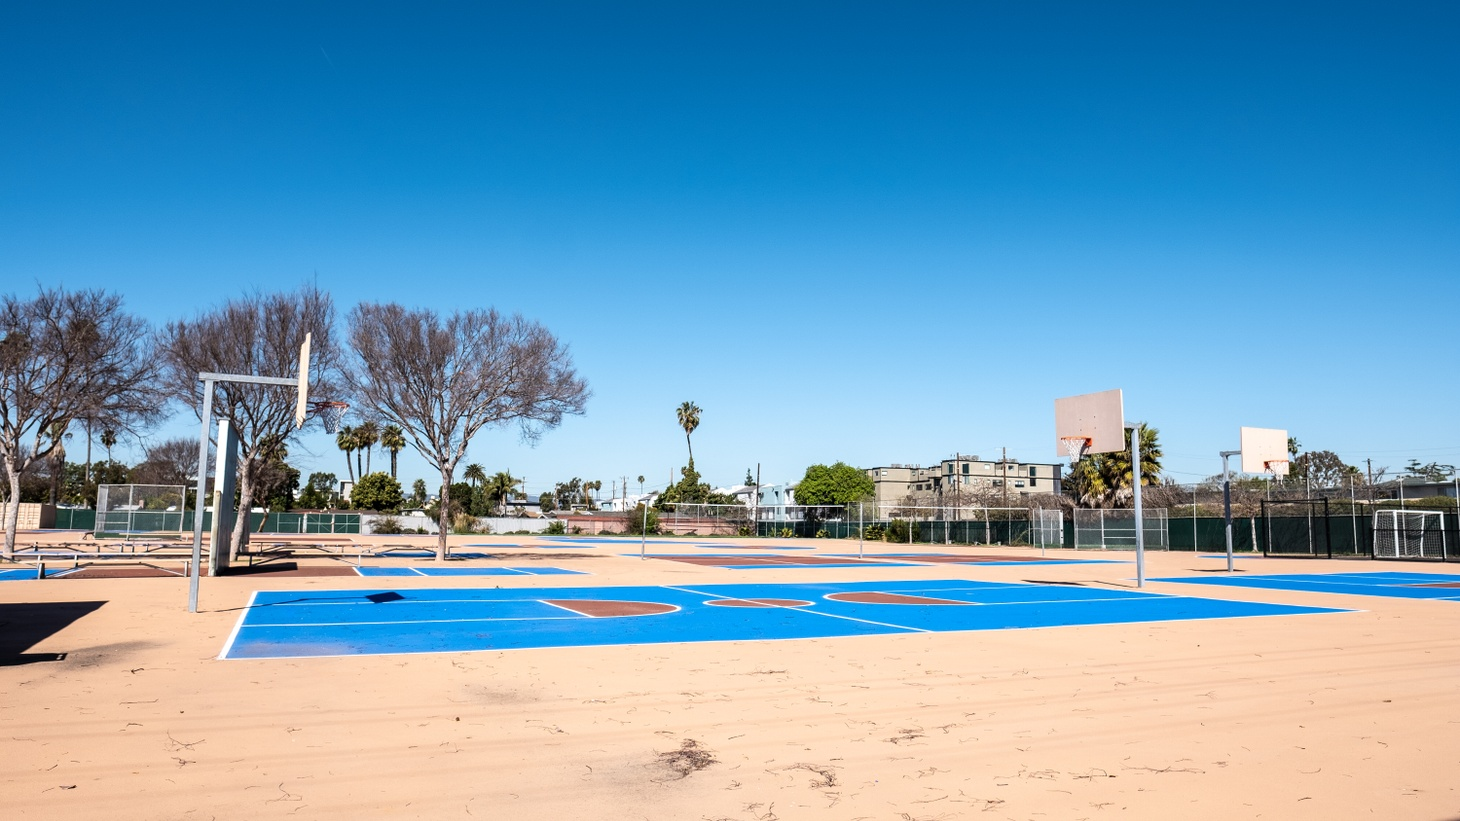 The playground at one LAUSD elementary school sits empty in Culver City, California, March 1, 2021. On March 11, 2021, the Los Angeles Unified School District and its teachers union, UTLA, reached a tentative agreement to reopen some classrooms as soon as April.